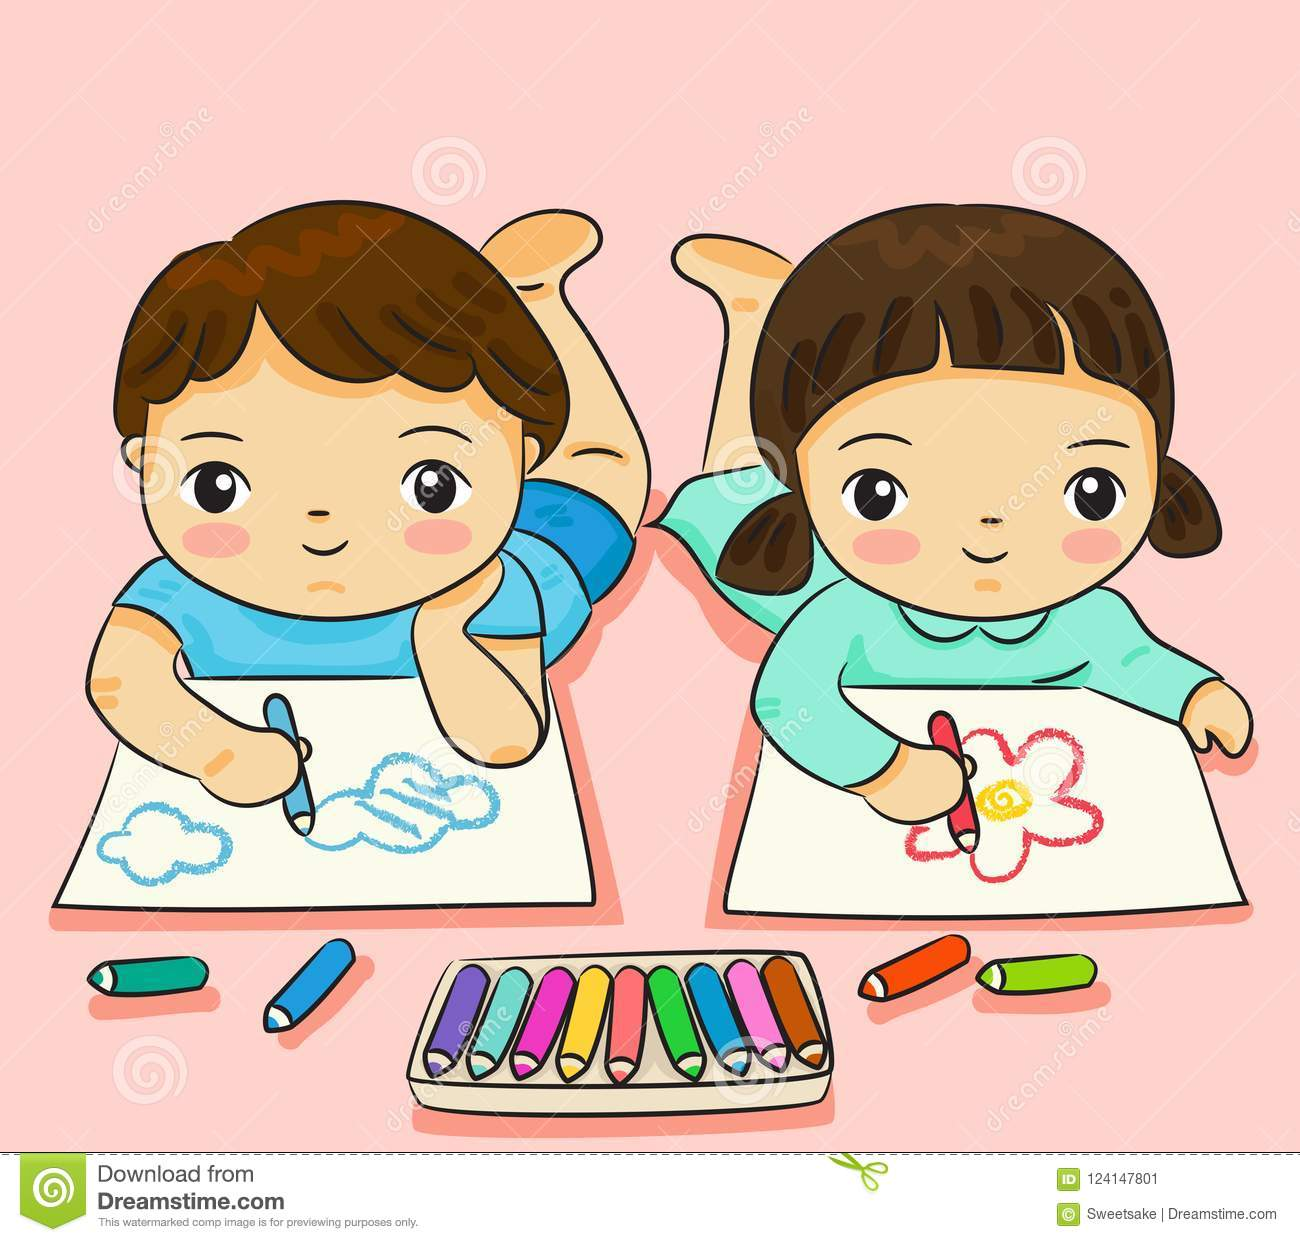 Boy and girl drawing with colorful on paper vector illustration